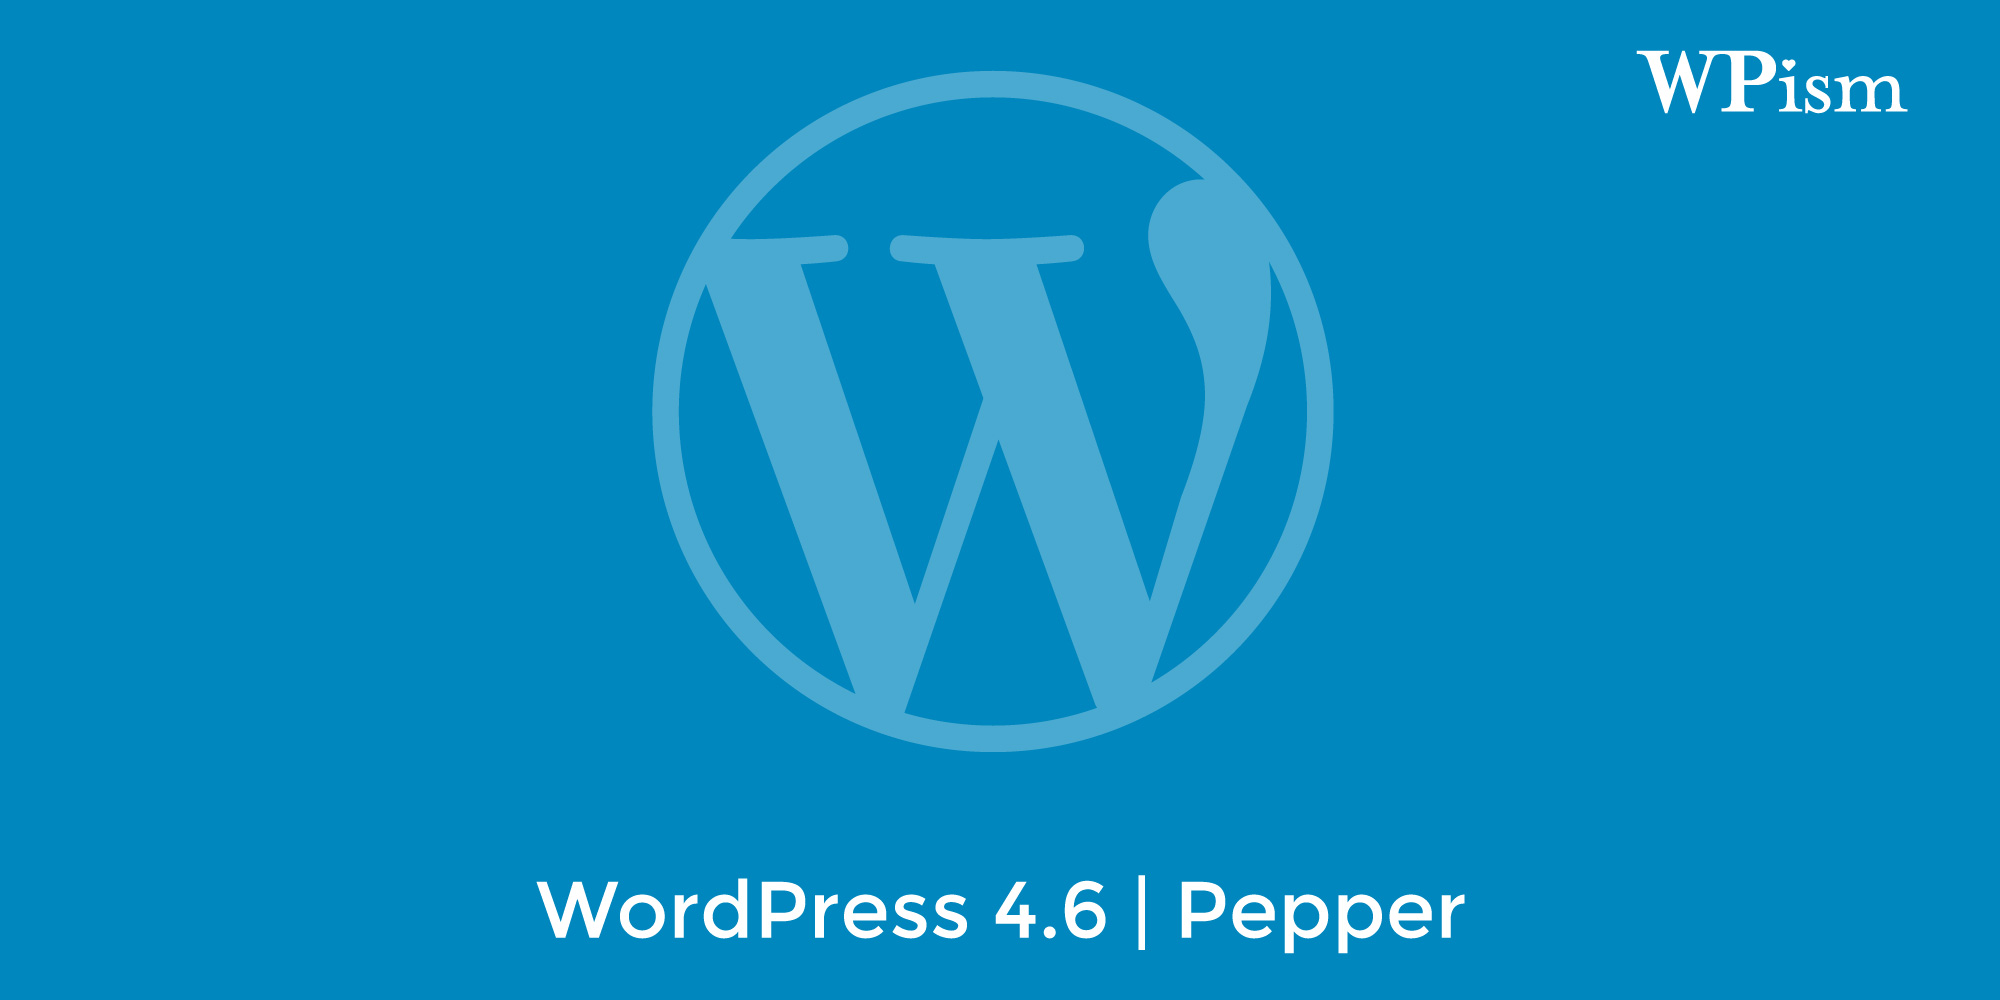 WordPress 4.6 Released - Guide To New Features And Updates | WPism